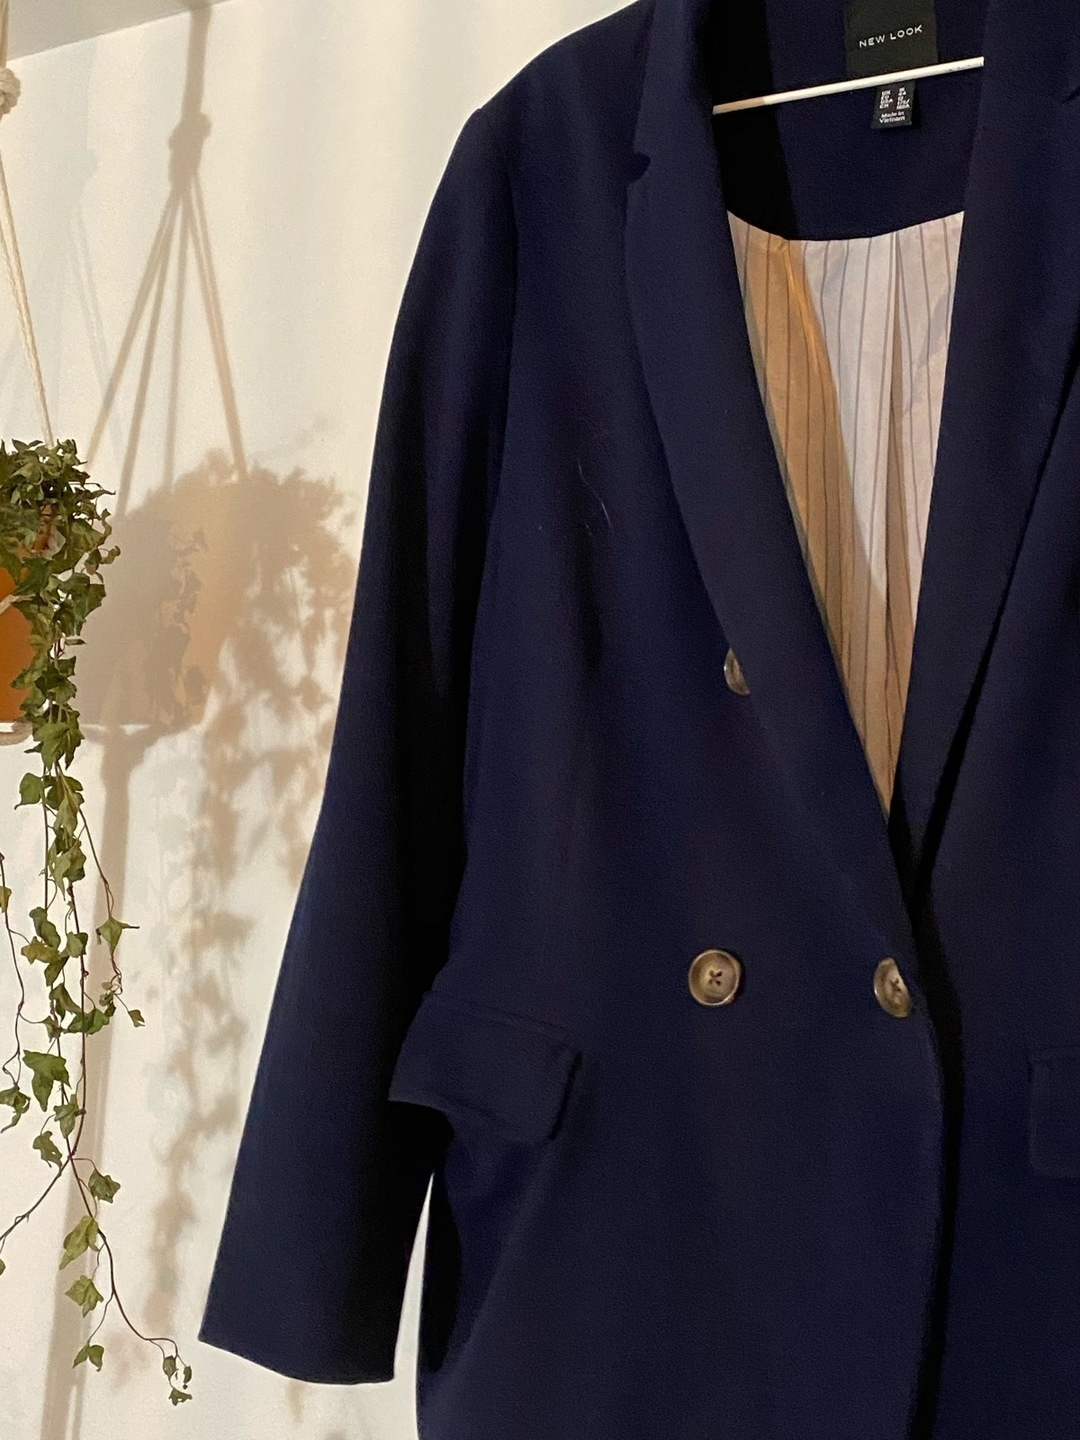 Women's blazers & suits - NEW LOOK photo 2